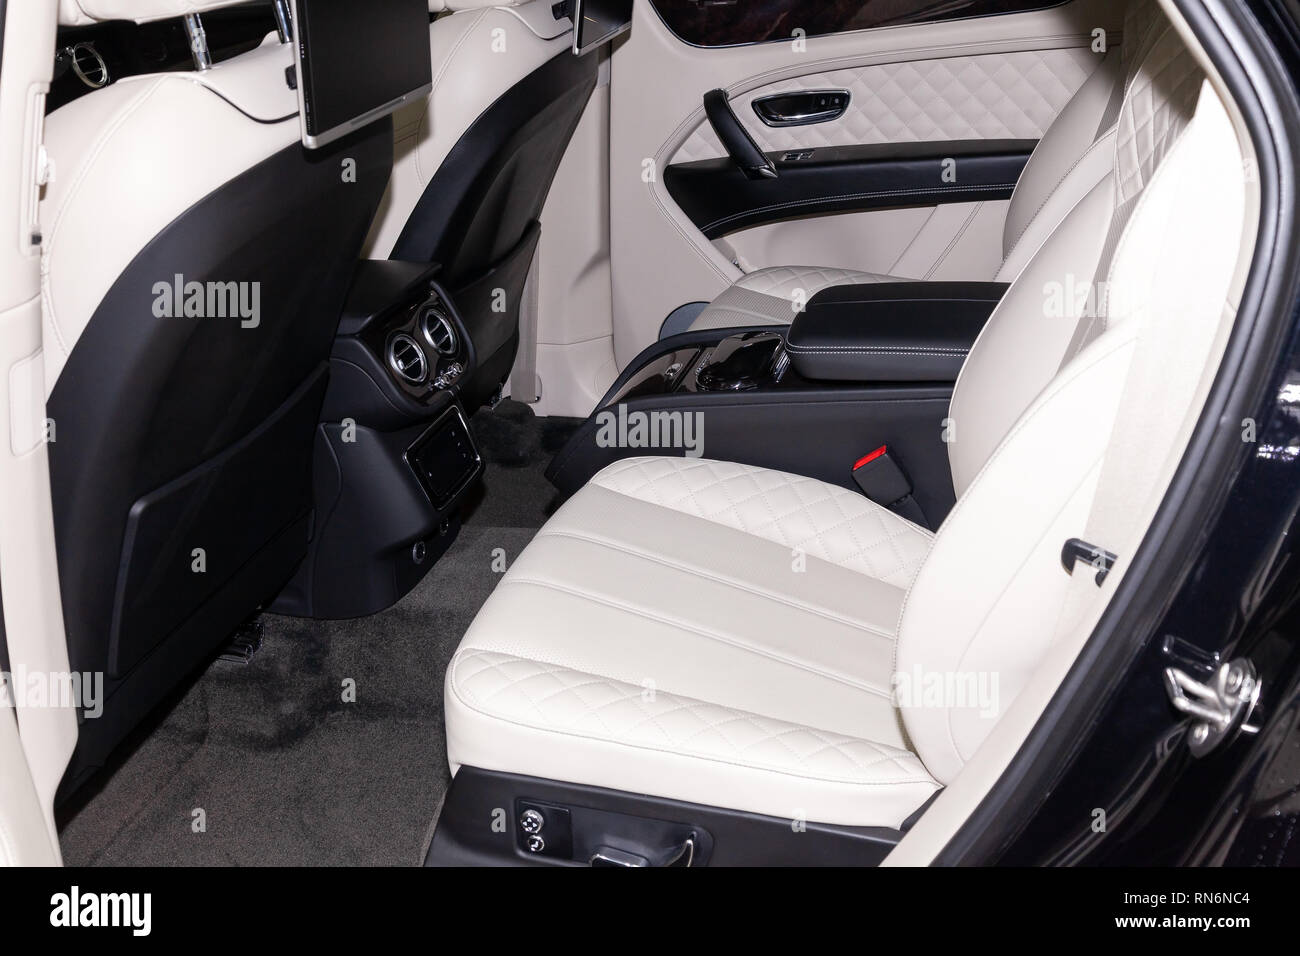 Novosibirsk Russia 08 01 18 Interior View With Rear Seats Of Luxury Very Expensive New Black Bentley Bentayga Car Stands In The Washing Box Waitin Stock Photo Alamy